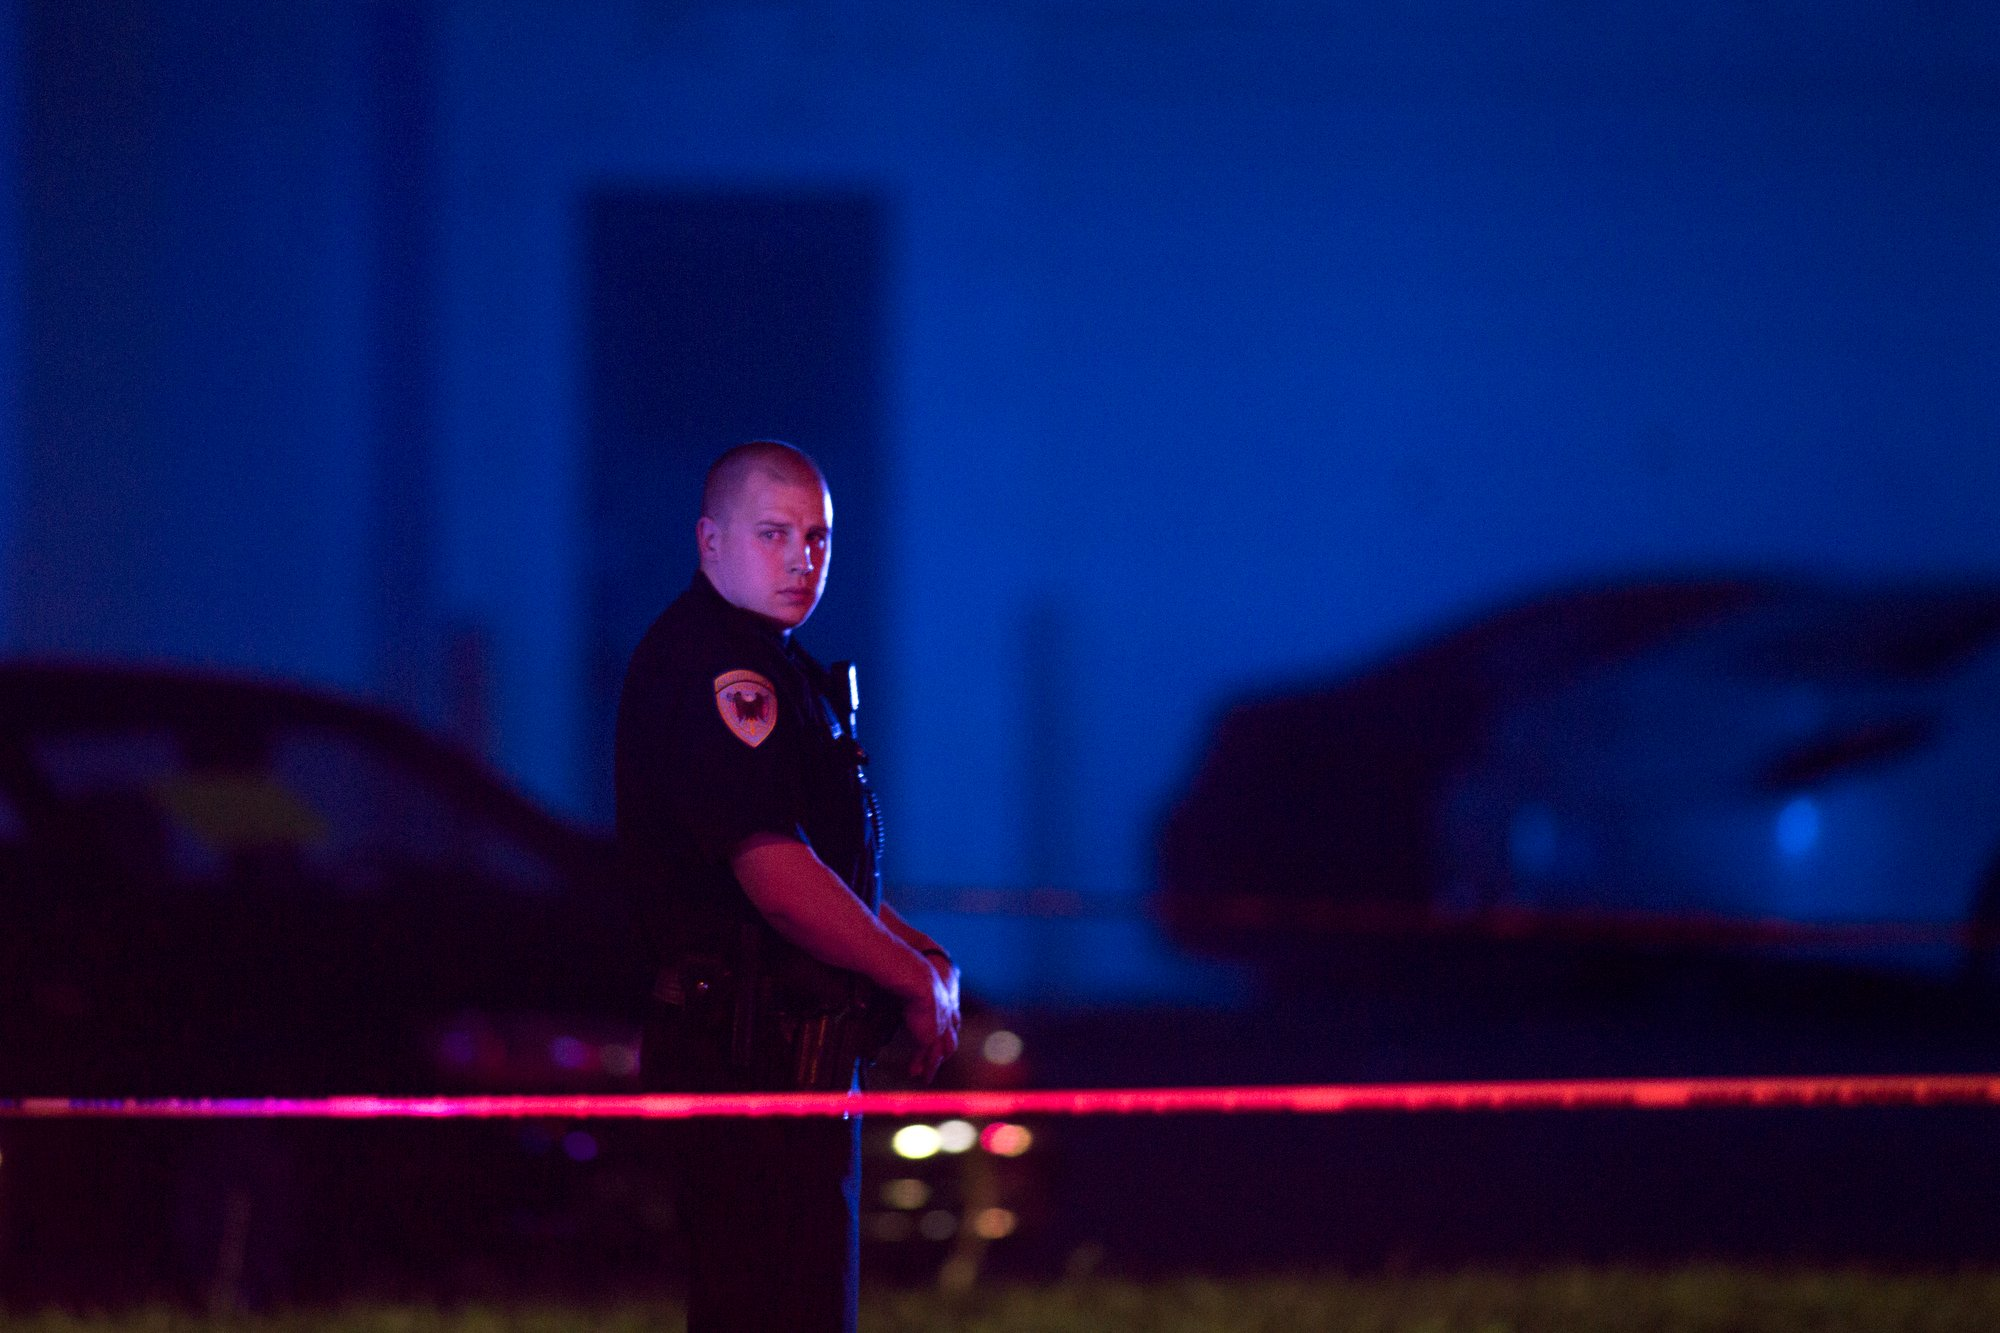 In this Sept. 7, 2016 photo, a police officer guards the scene after a police officer fatally shot a man who was suspected of stealing a semi-automatic pistol from a gun store in Wyoming, Mich., in the suburbs of Grand Rapids. Community leaders in Grand Rapids say the police can only do so much. They're looking for more proactive measures as opposed to reactive ones.